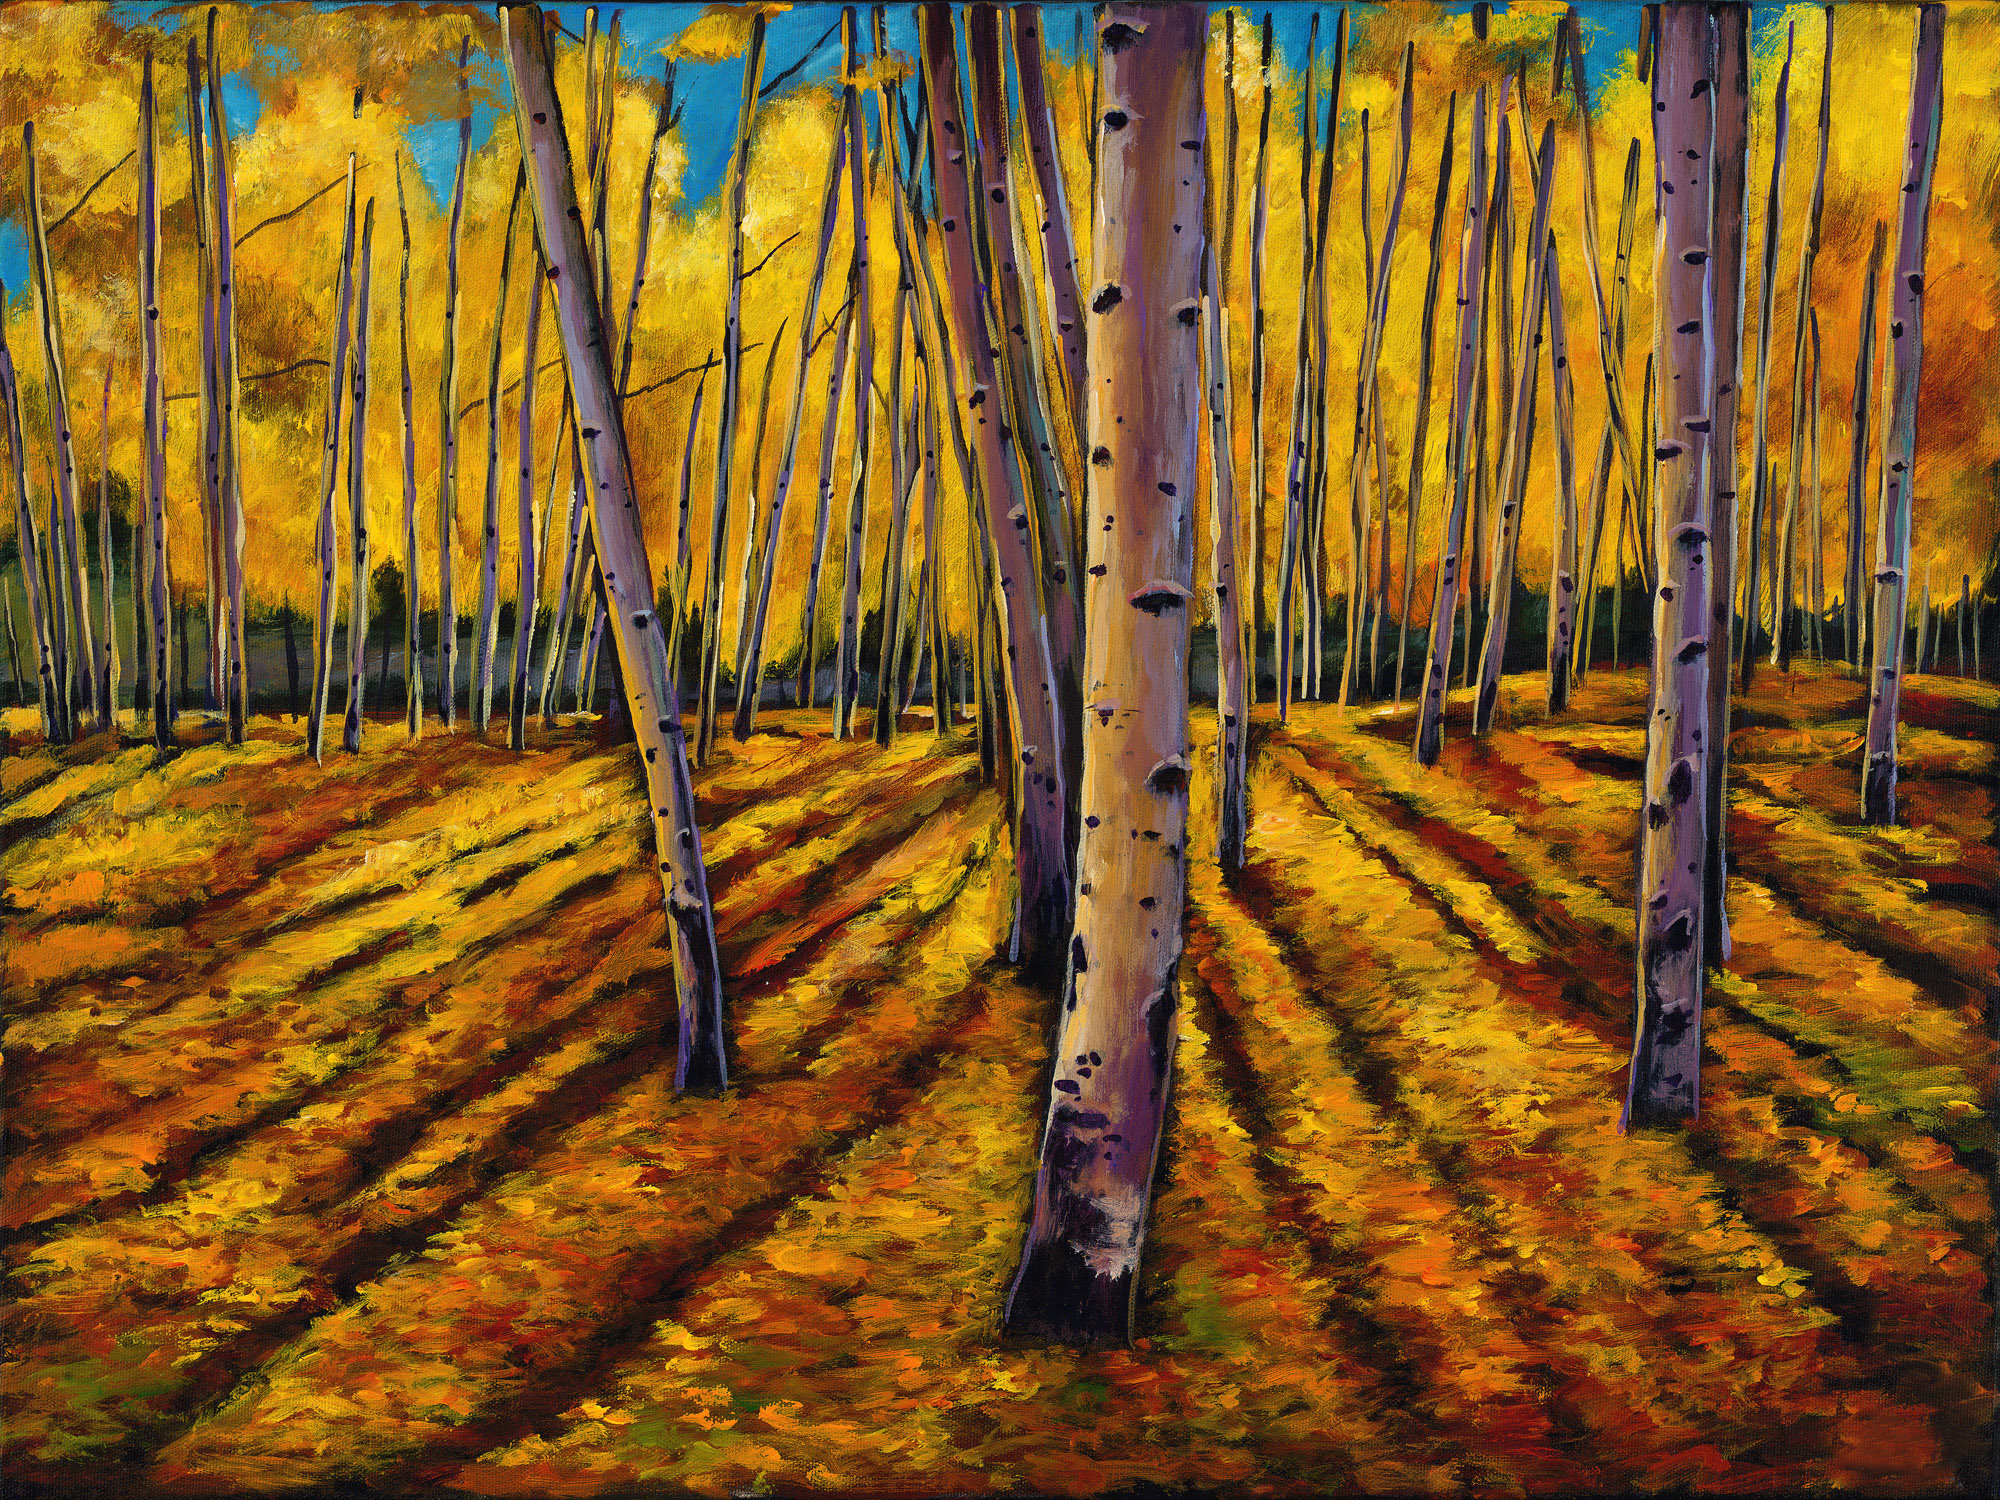 How To Paint Foliage With Acrylics